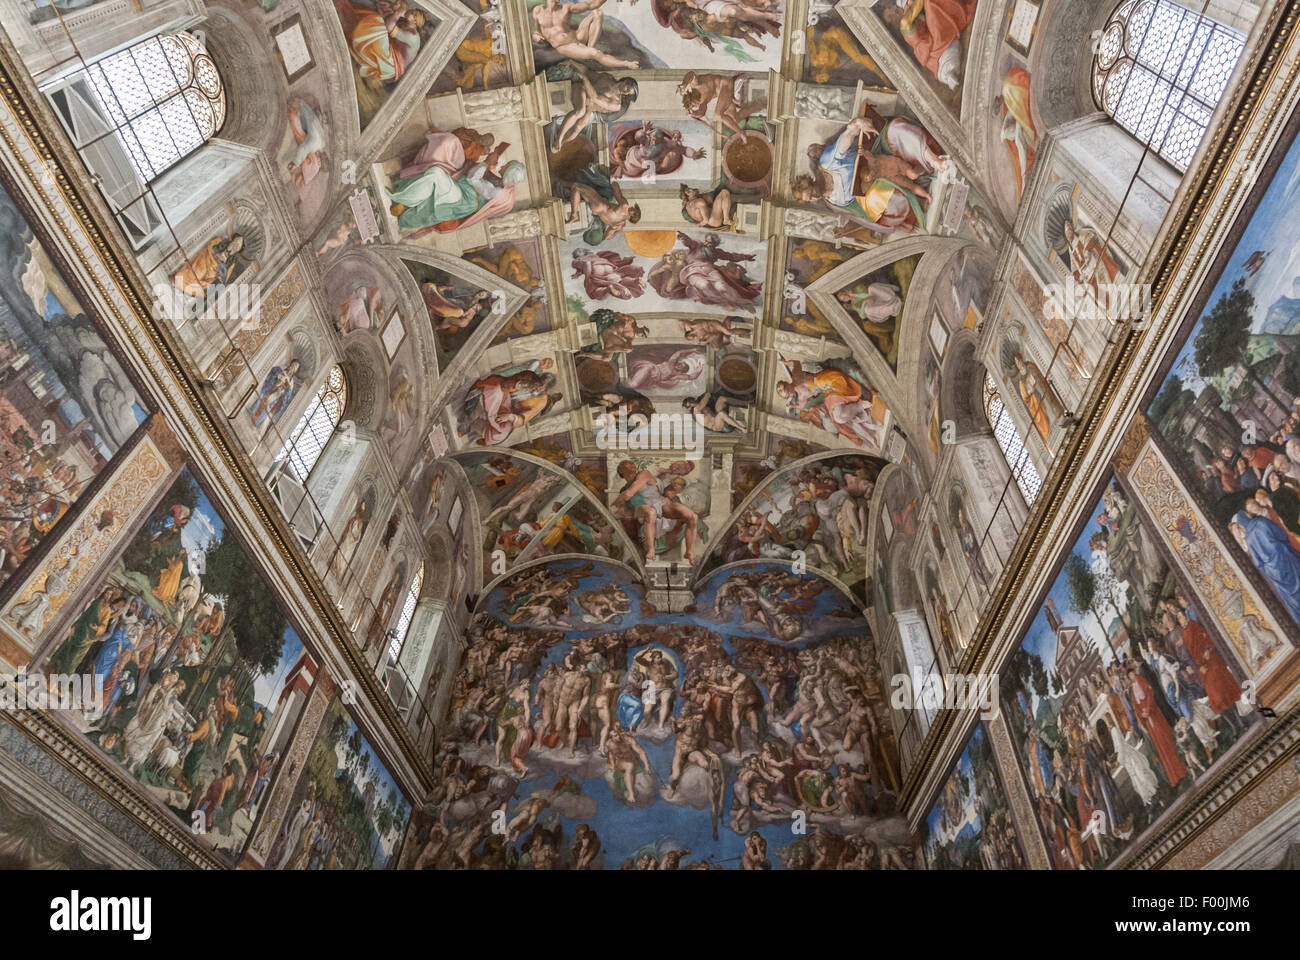 The Sistine Chapel ceiling, painted by Michelangelo. Vatican Museums, Vatican City, Rome Italy - Stock Image